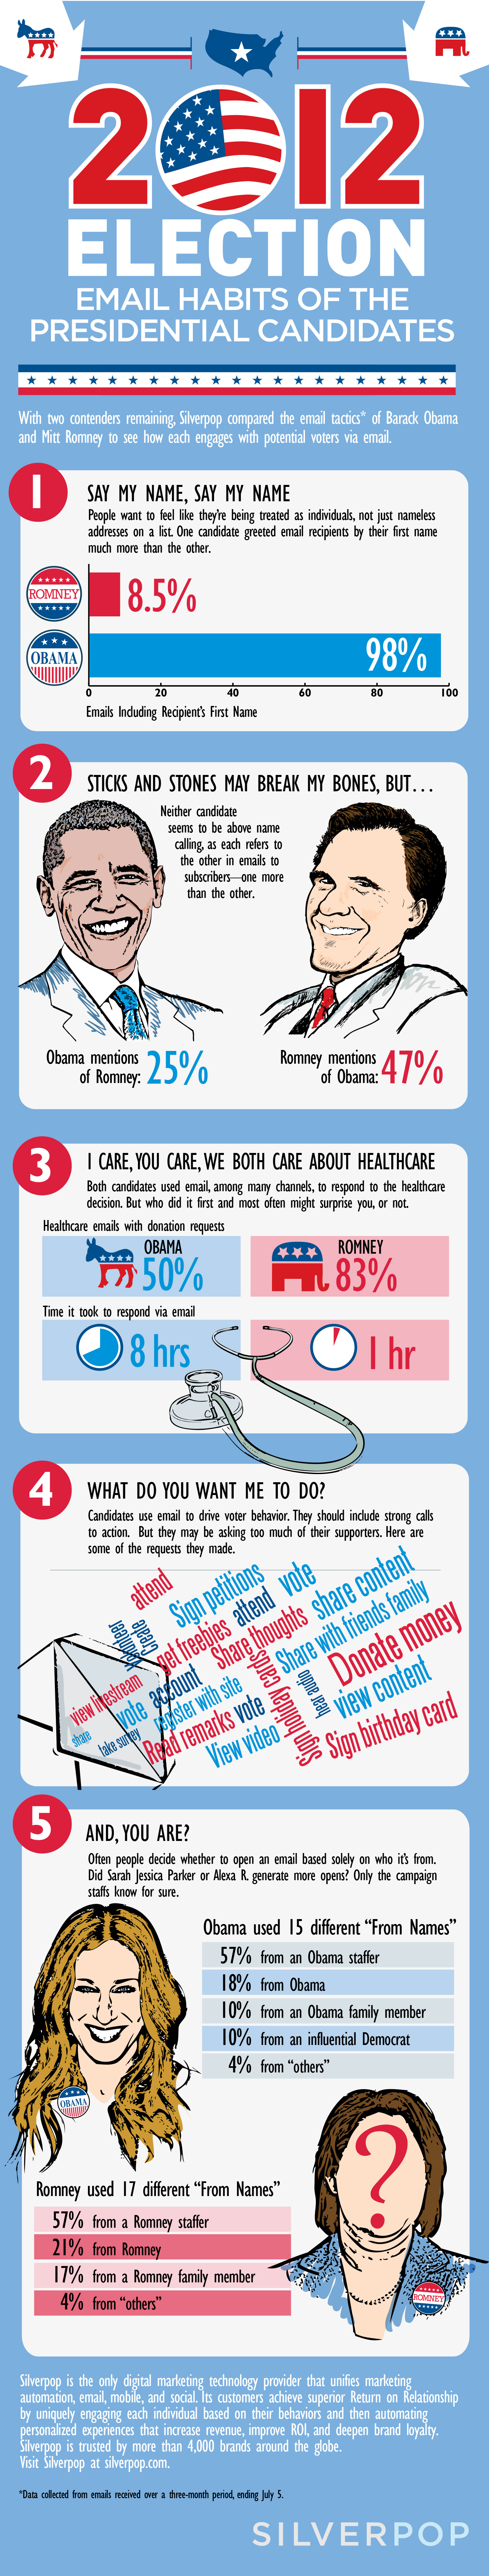 Email-Habits-Of-The-Presidential-Candidates-infographic